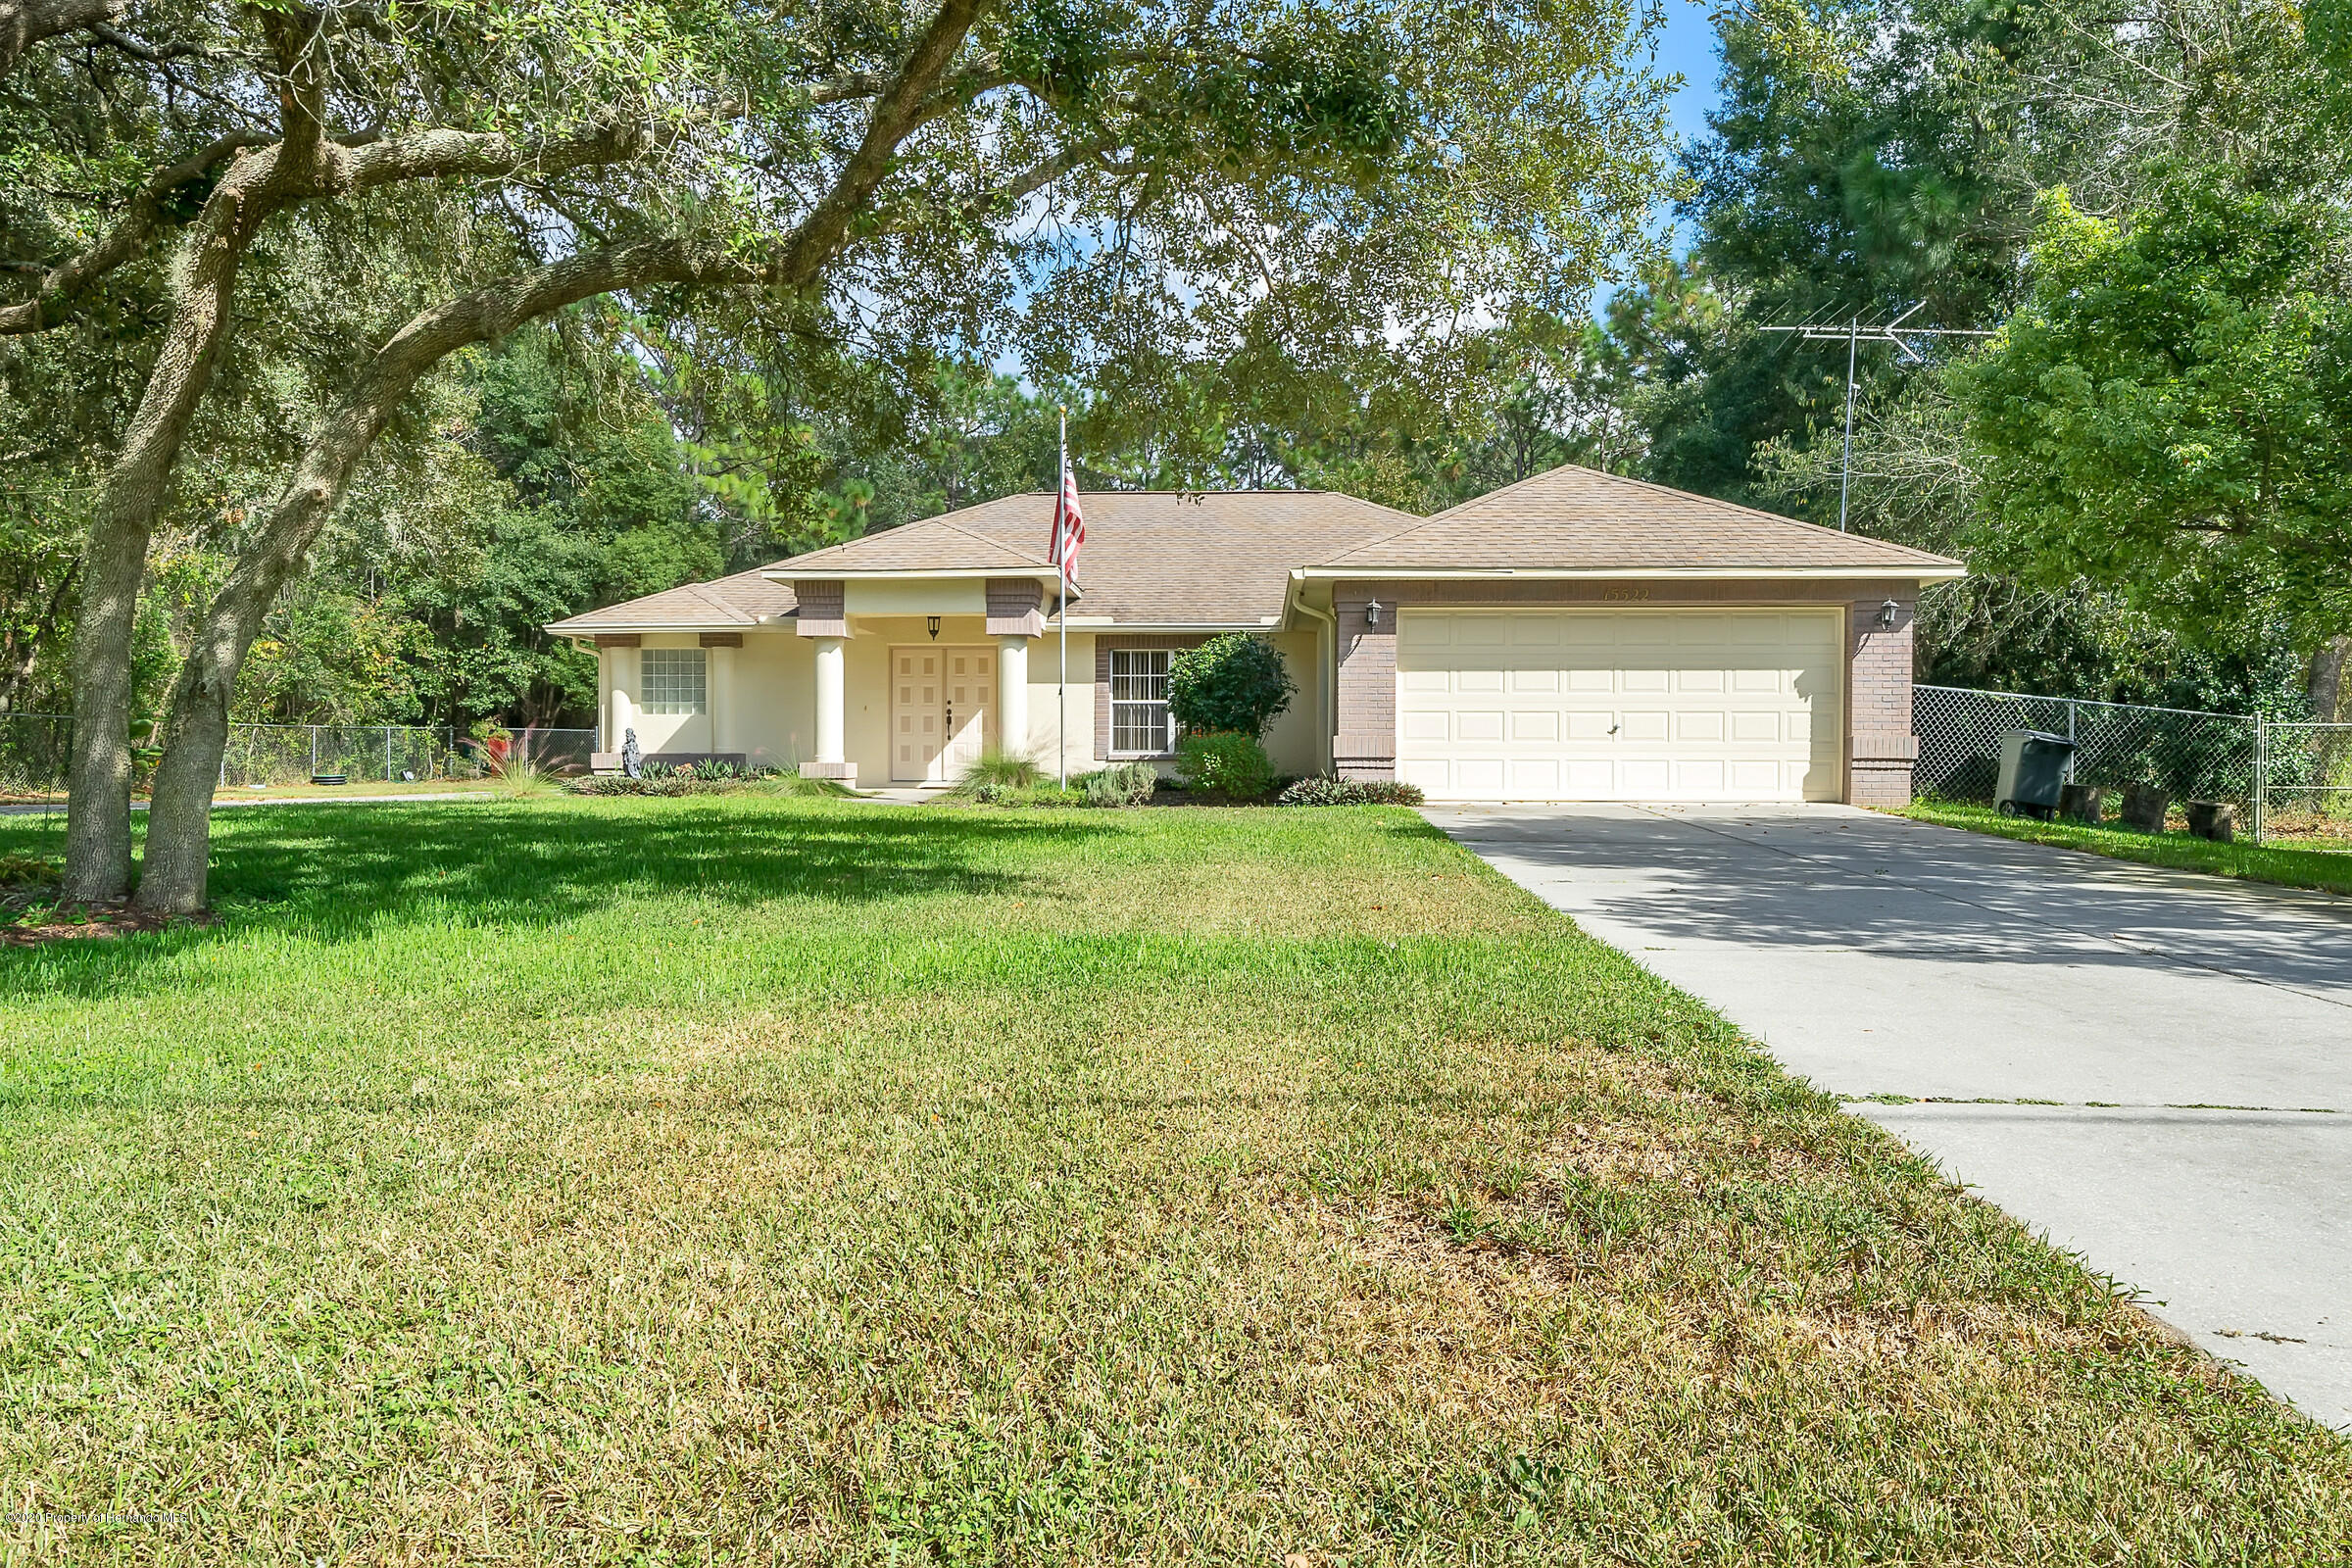 Details for 15522 Oakcrest Circle, Brooksville, FL 34604